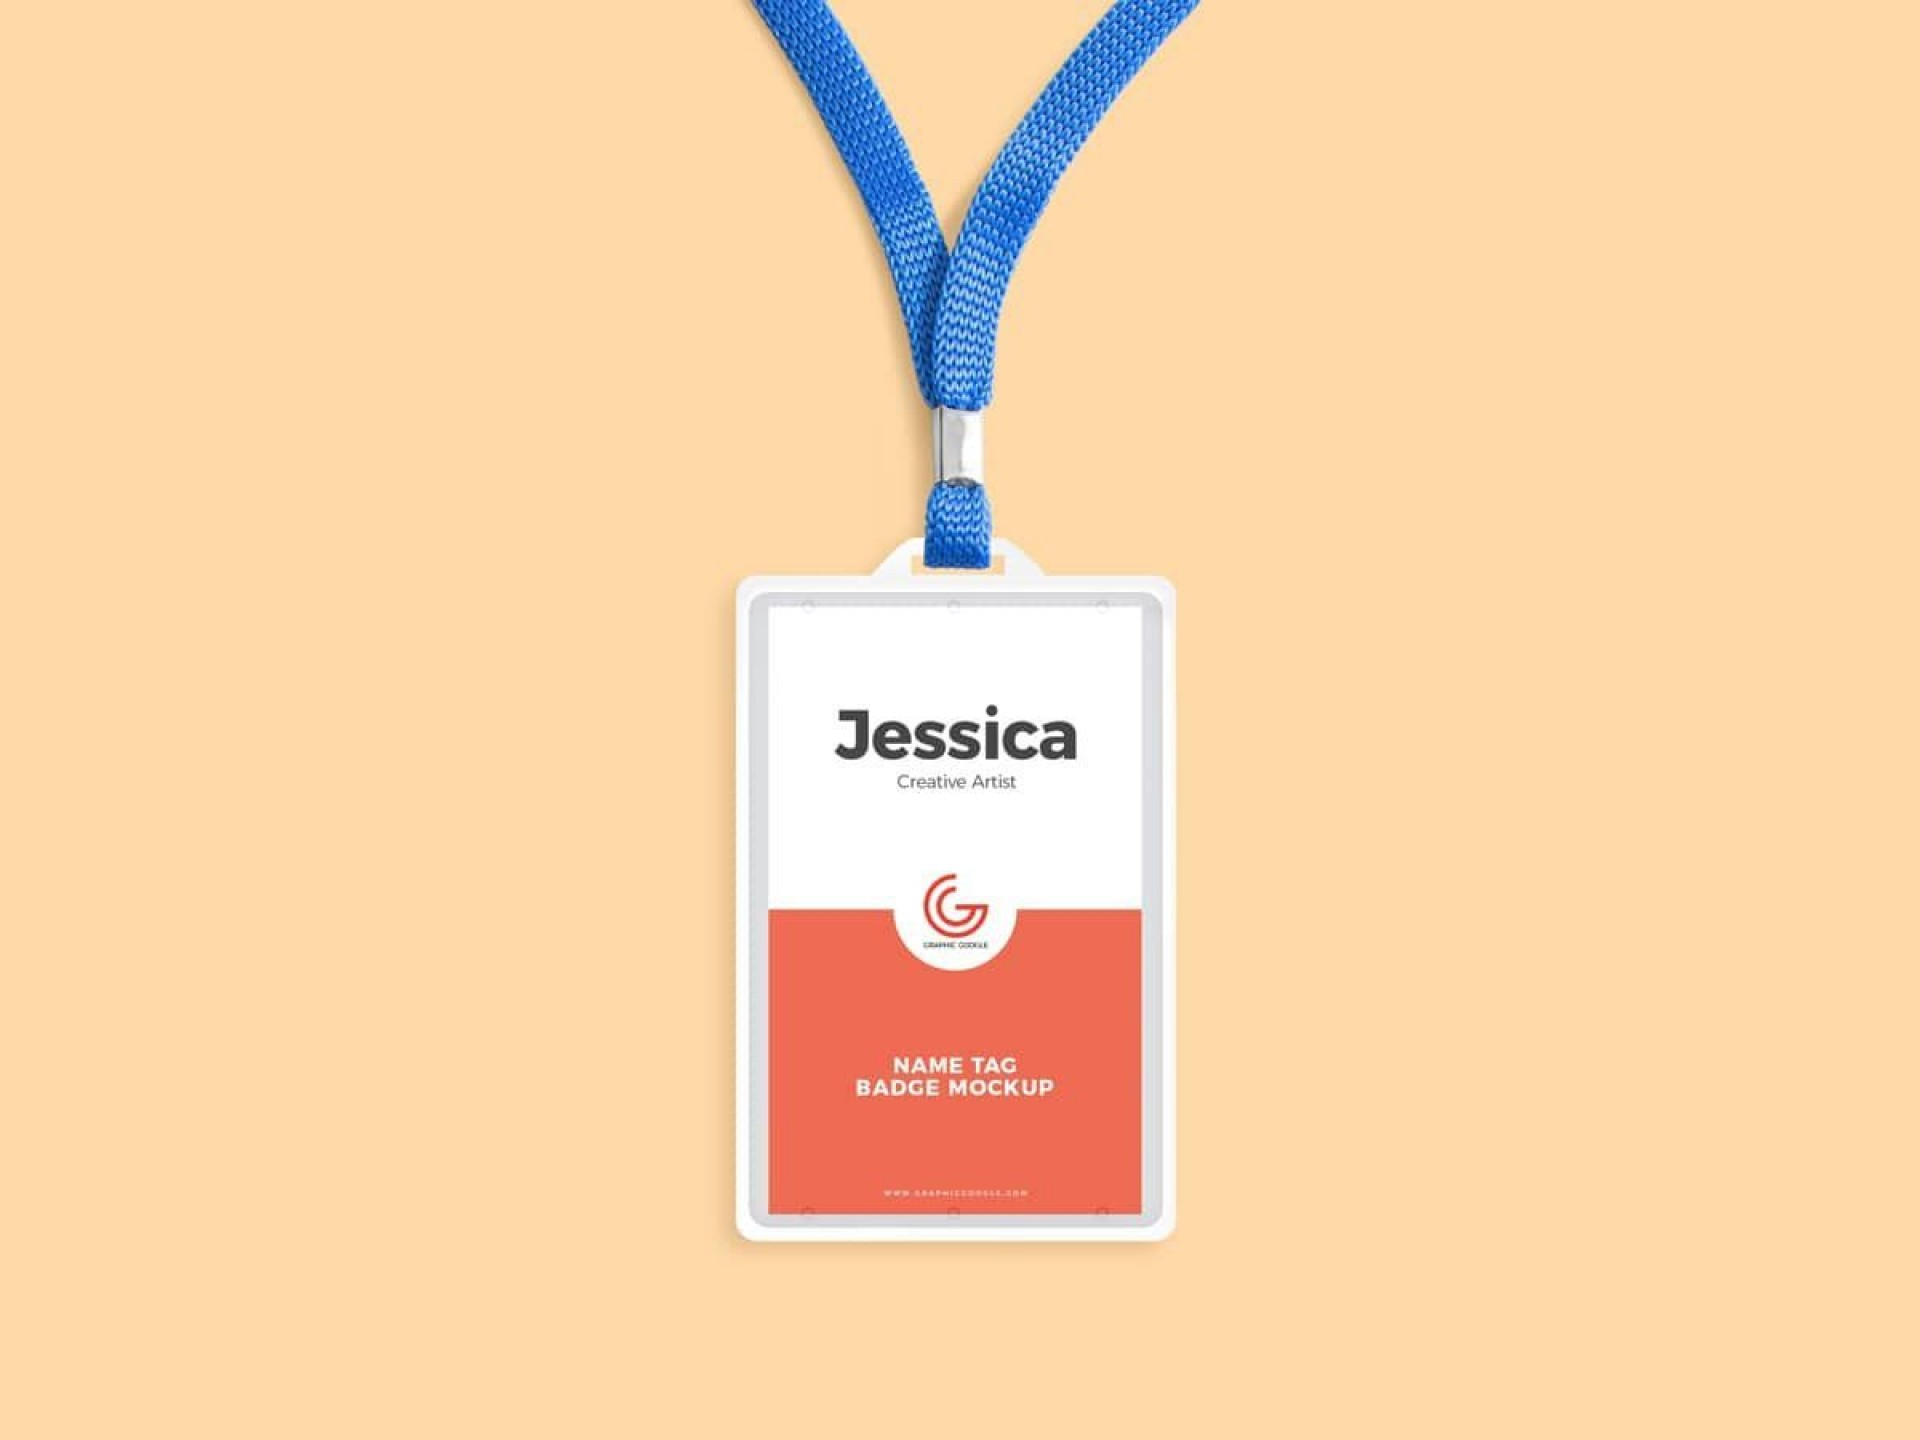 007 Stirring Name Tag Design Template Photo  Free Download Psd1920